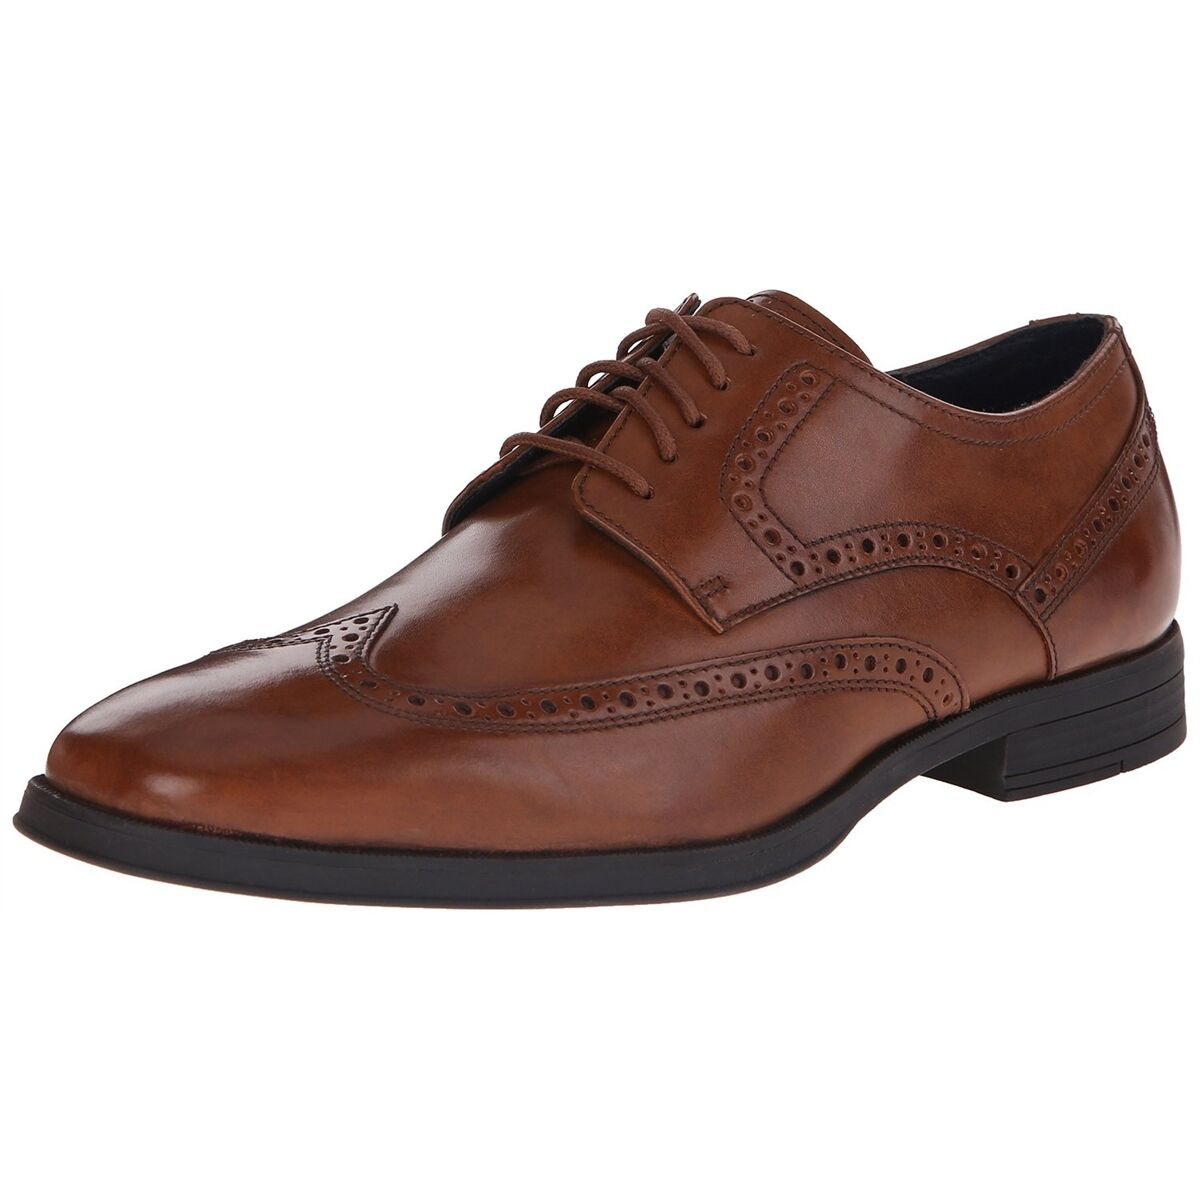 Cole Haan Men's NEW Montgomery Wing Tip Tip Tip Toe Oxford Leather scarpe Marroneee NEW ffce2c